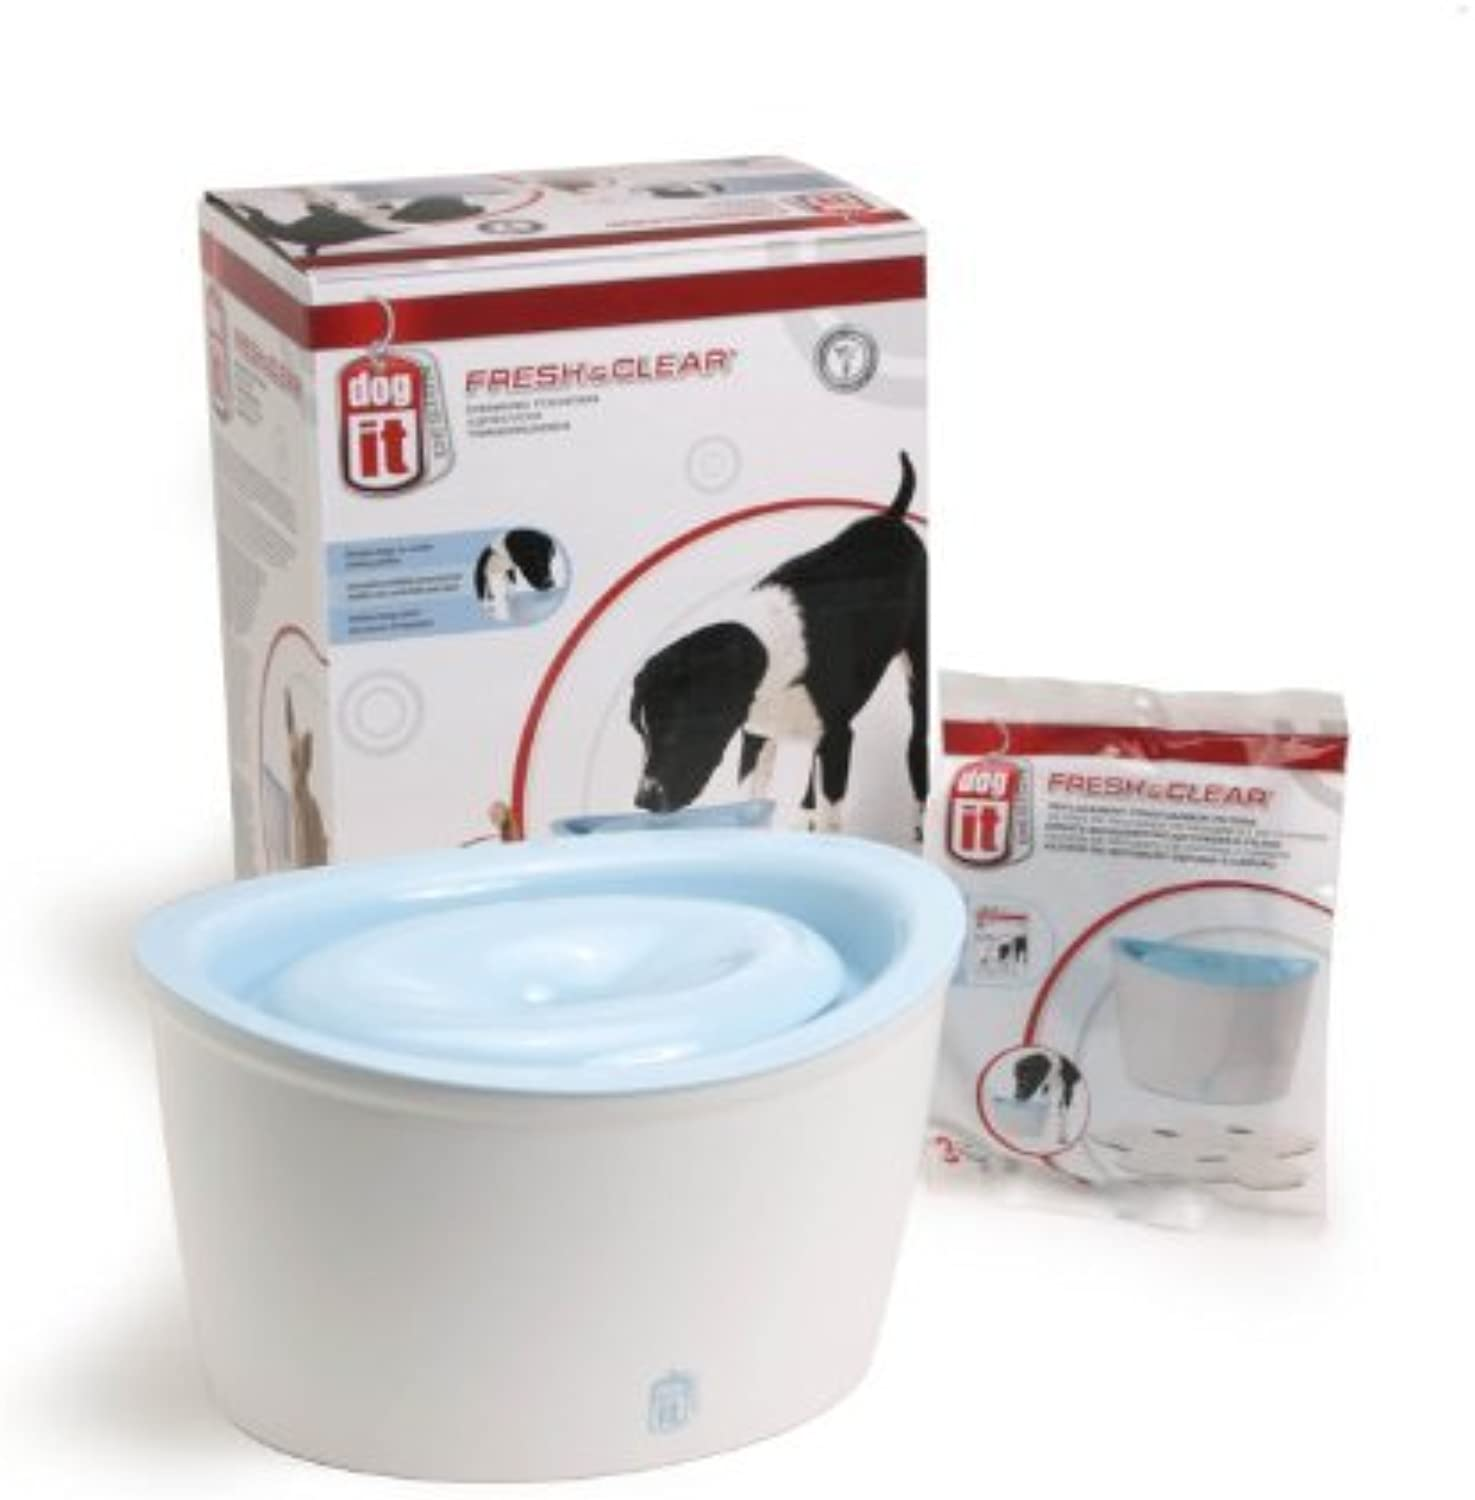 Dogit Design Fresh and Clear Dog Drinking Fountain, Value Bundle by Dogit